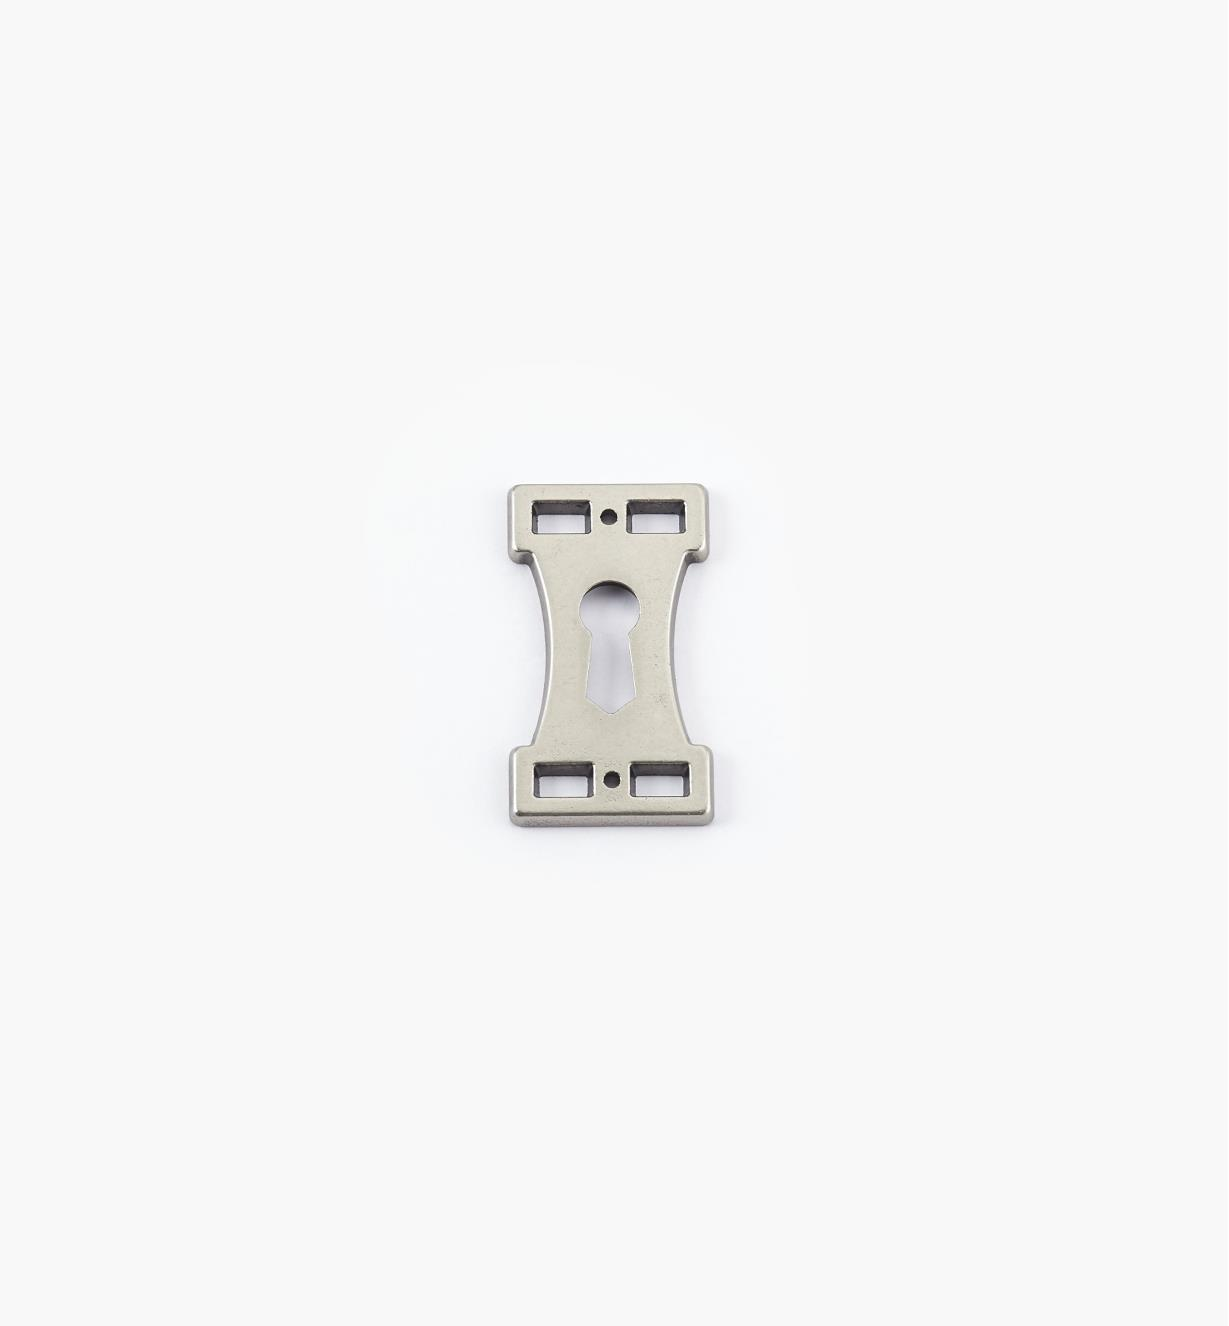 01A2296 - Keyhole Escutcheon, Arts and Crafts Suite I